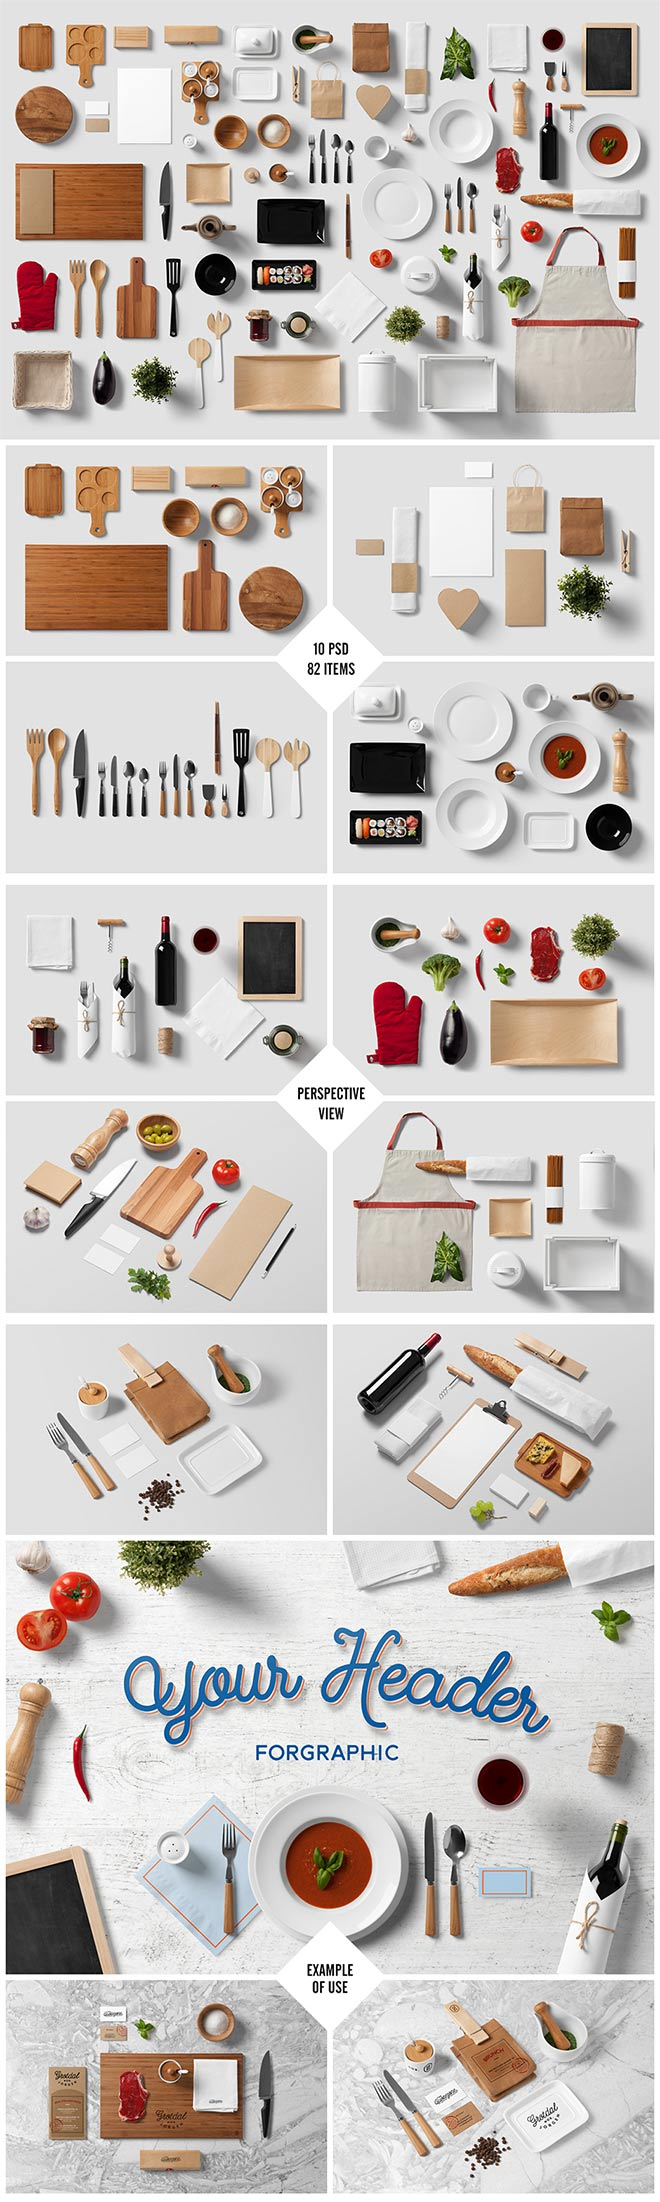 Restaurant / Food – Branding Mock-Up